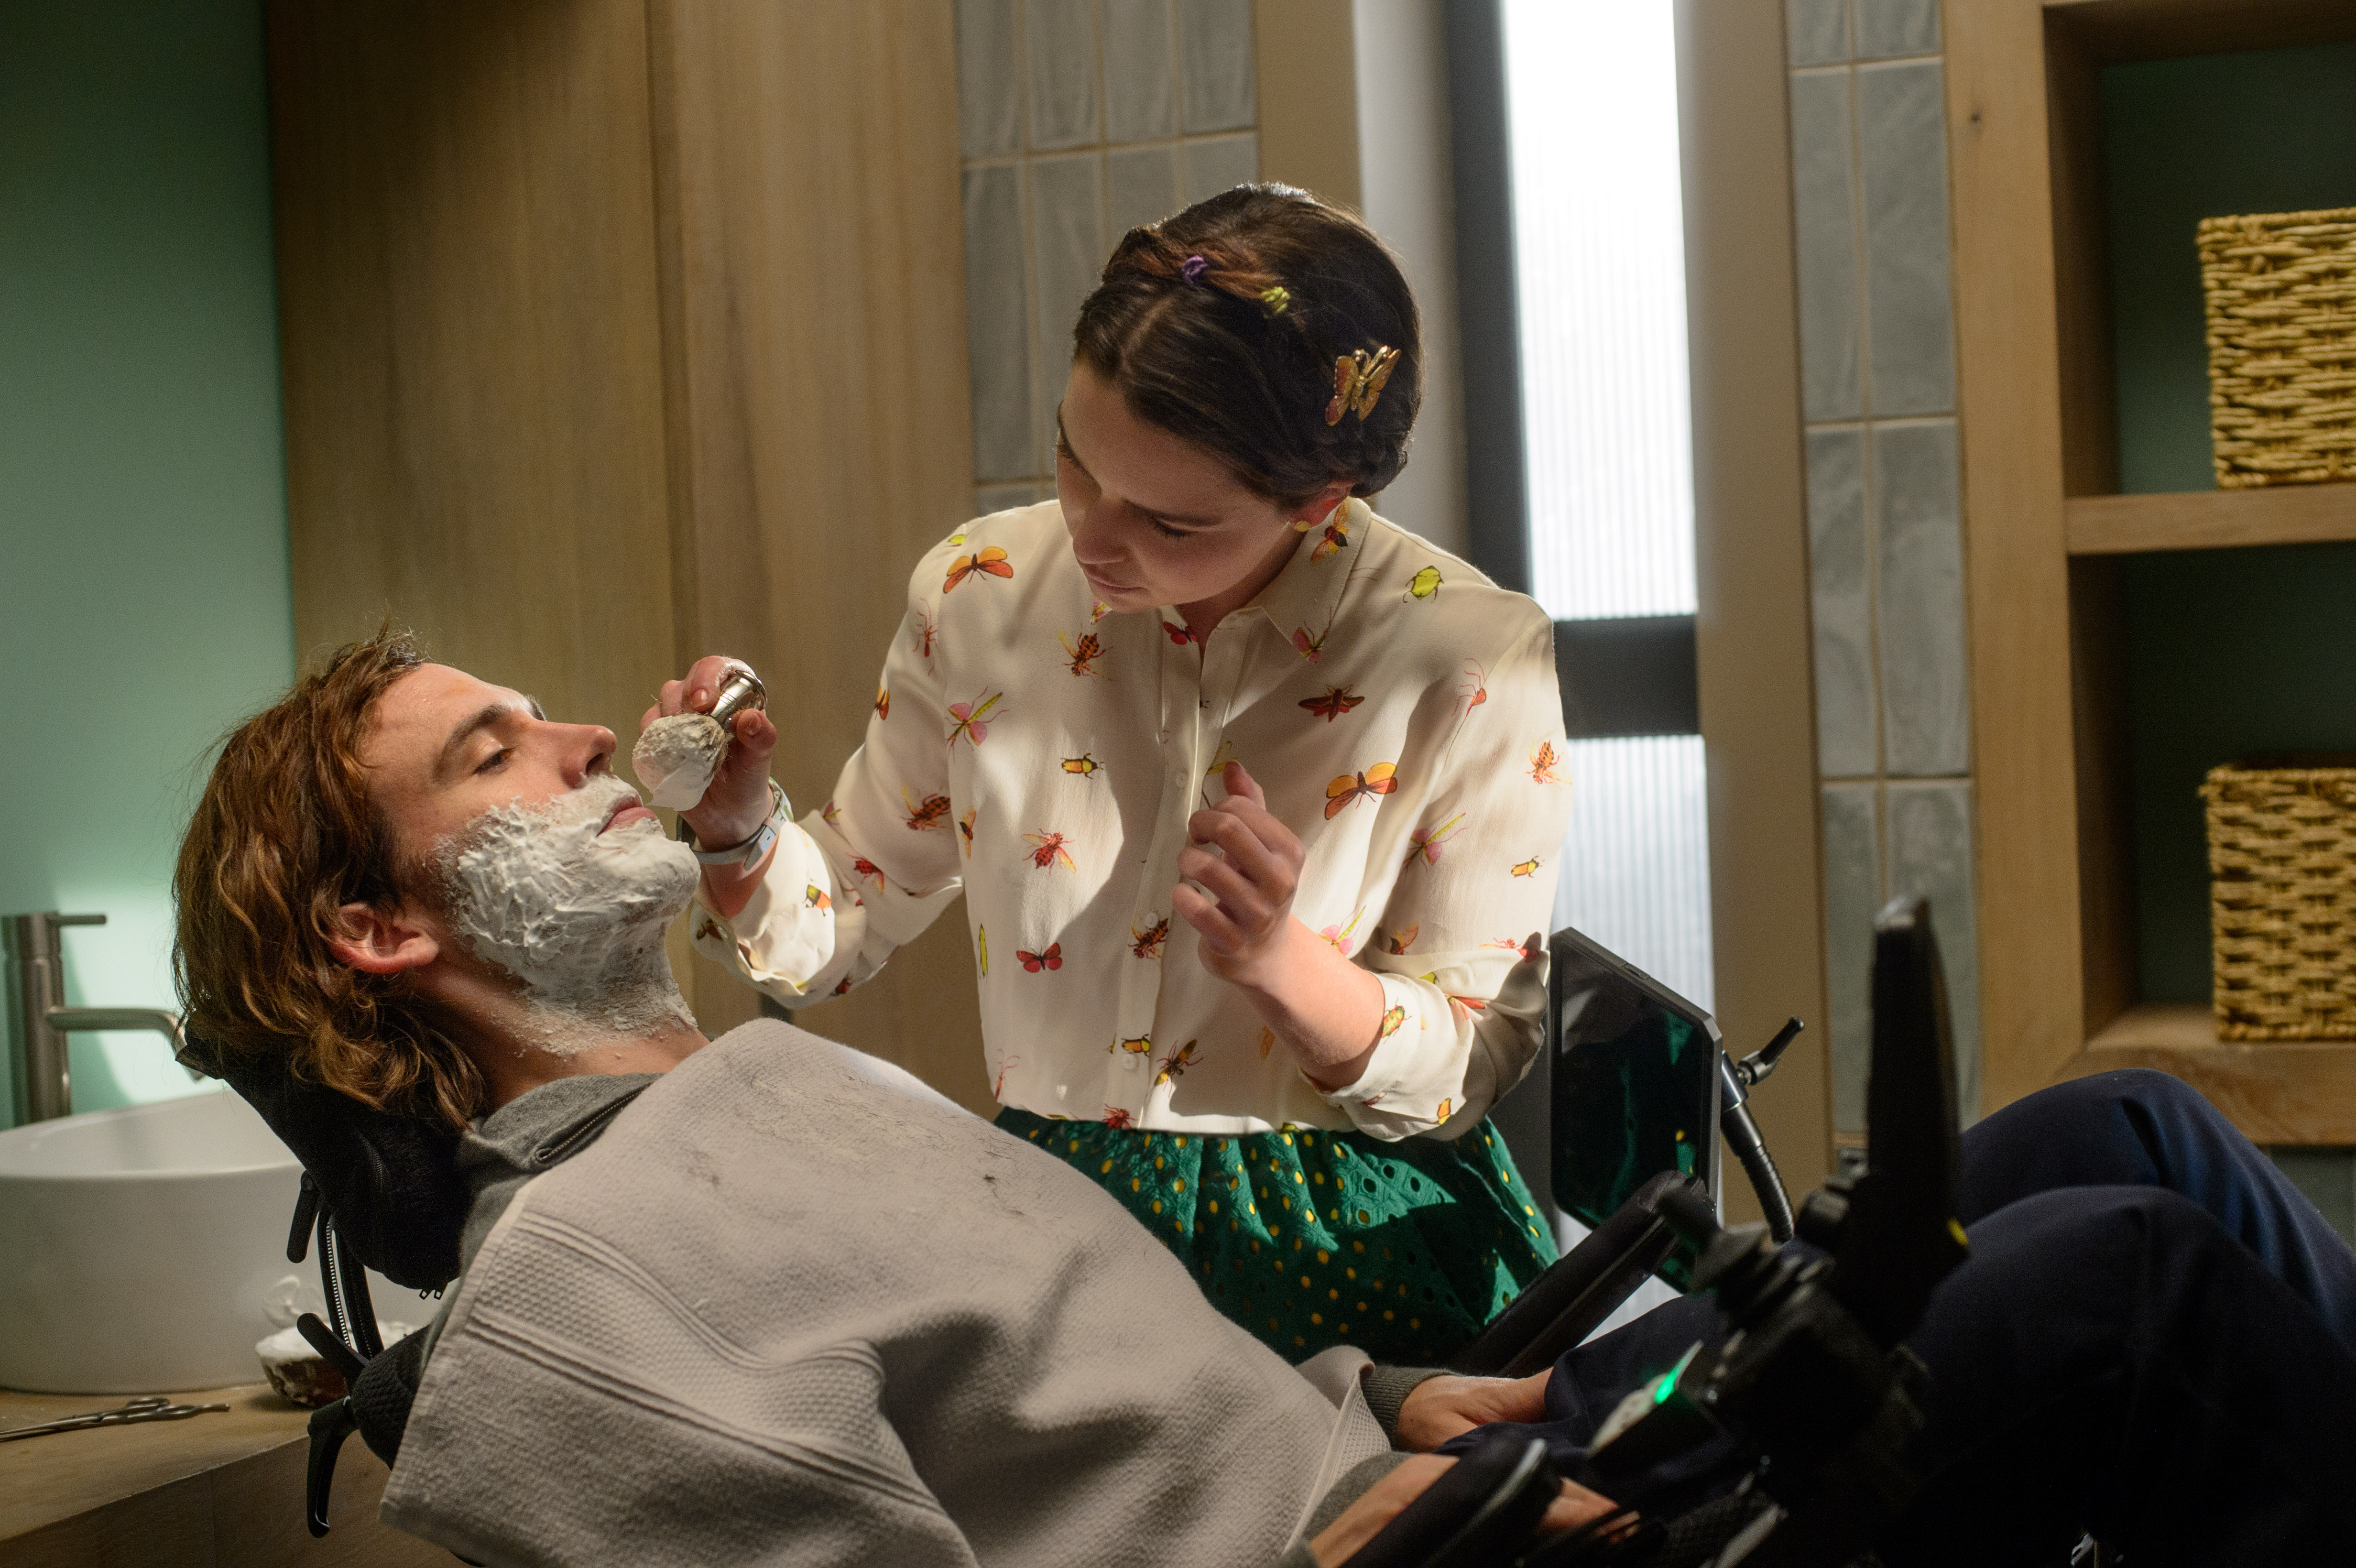 Me Before You 4k Ultra Hd Wallpaper Background Image 4928x3280